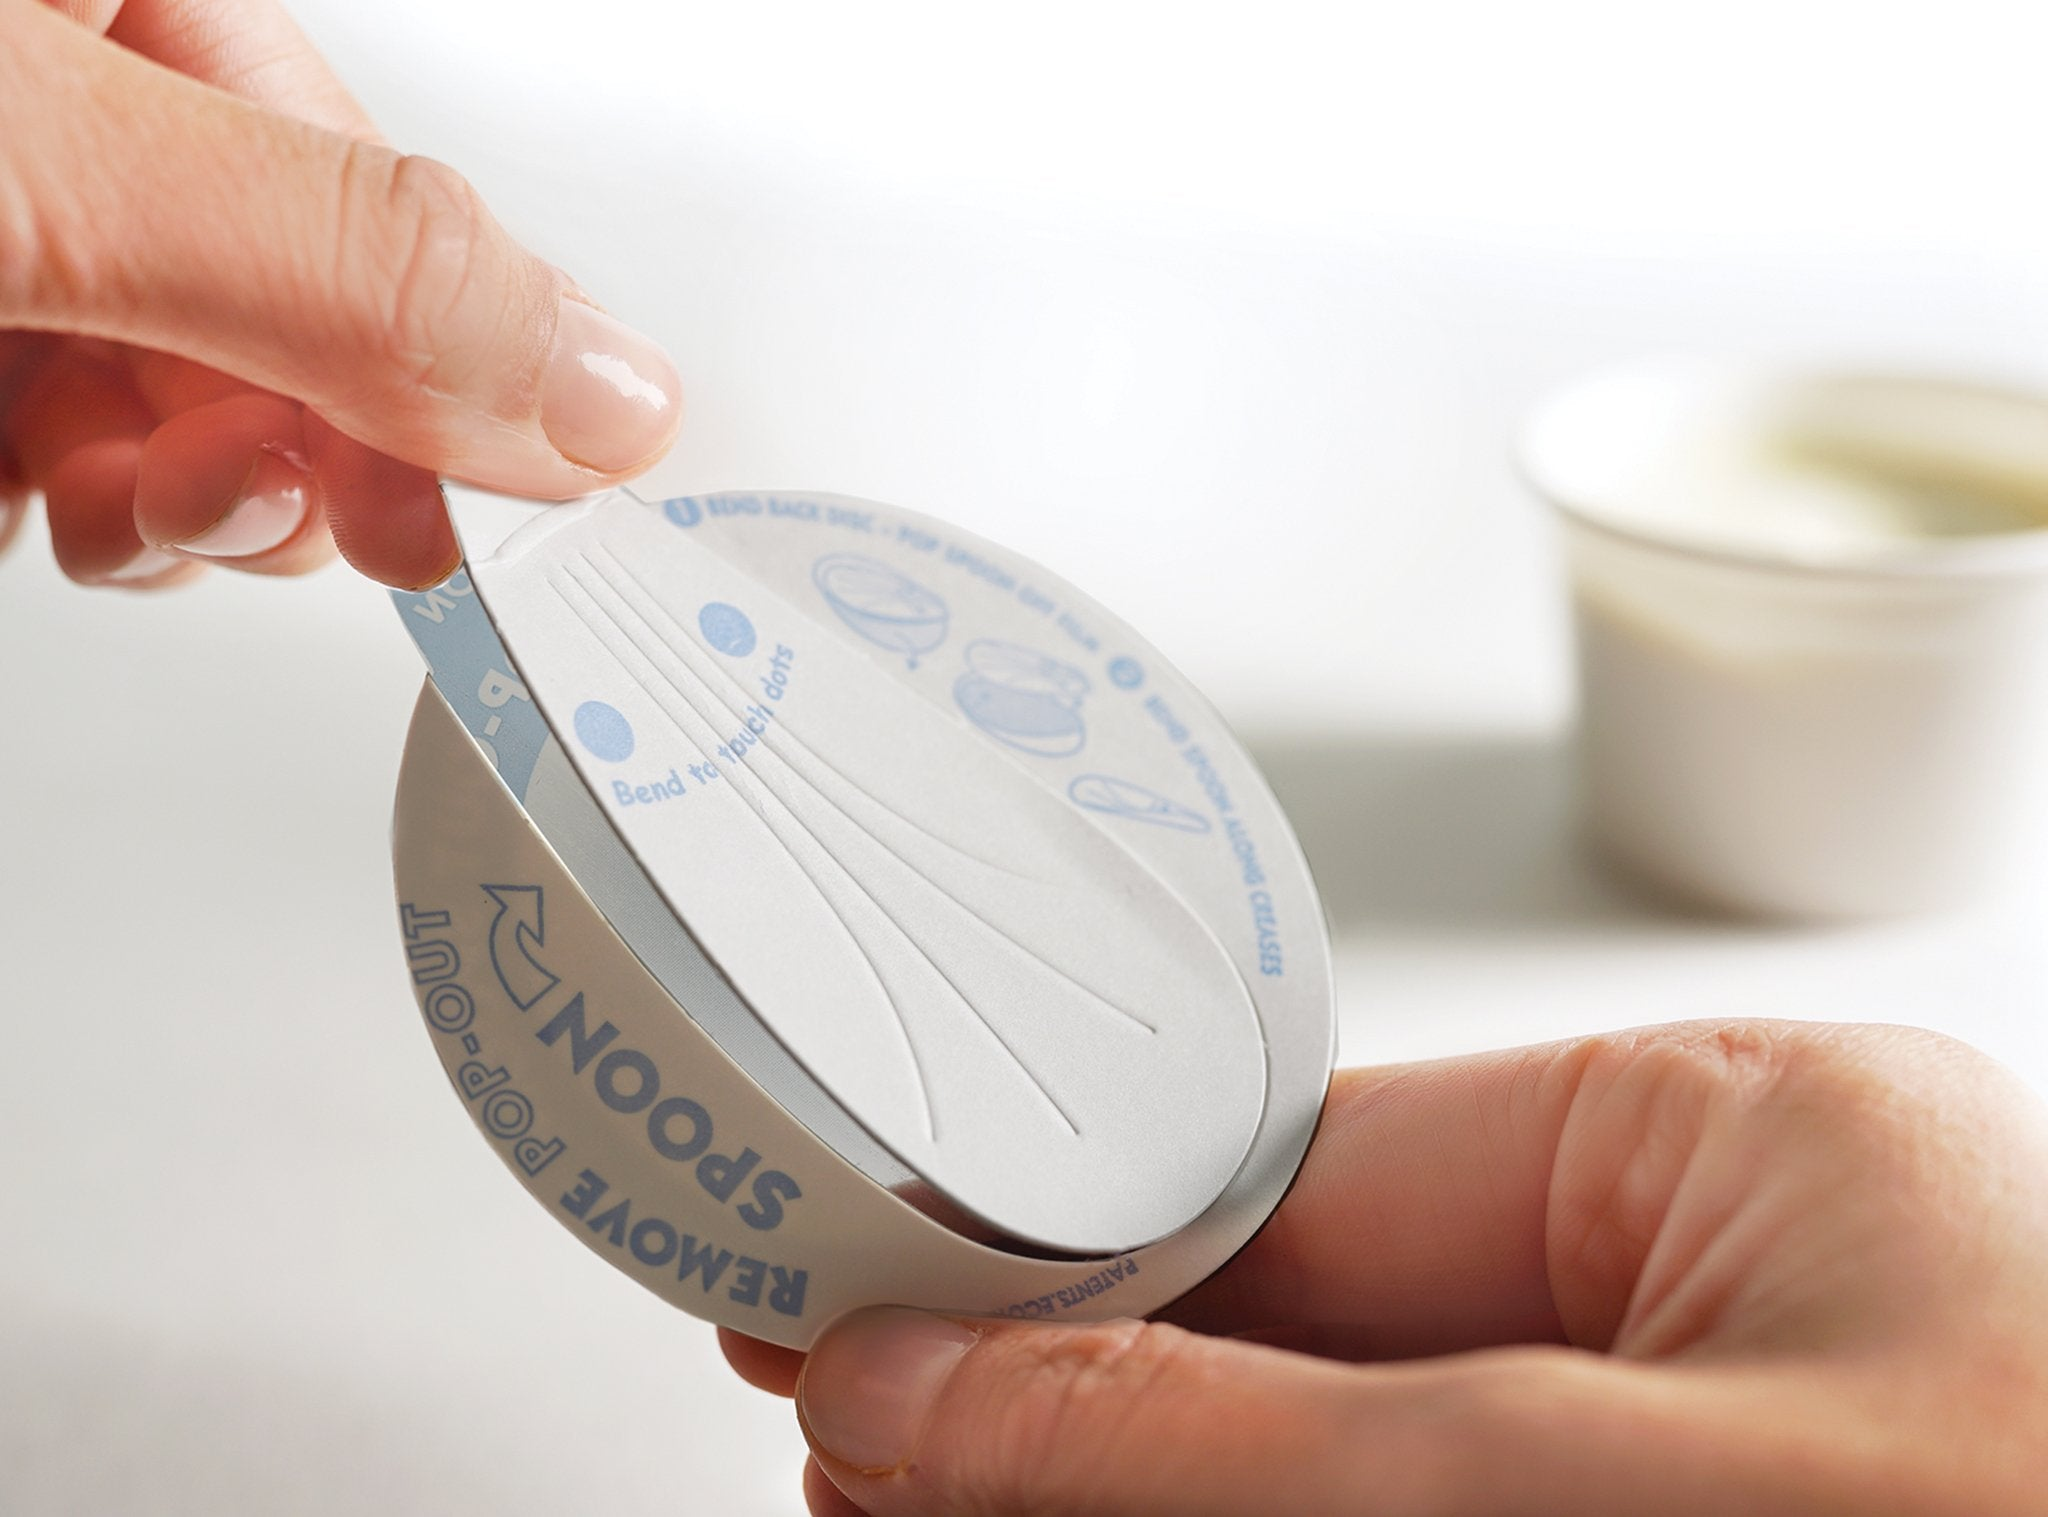 EcoTensil develops yogurt pot lid with pop-out paperboard spoon